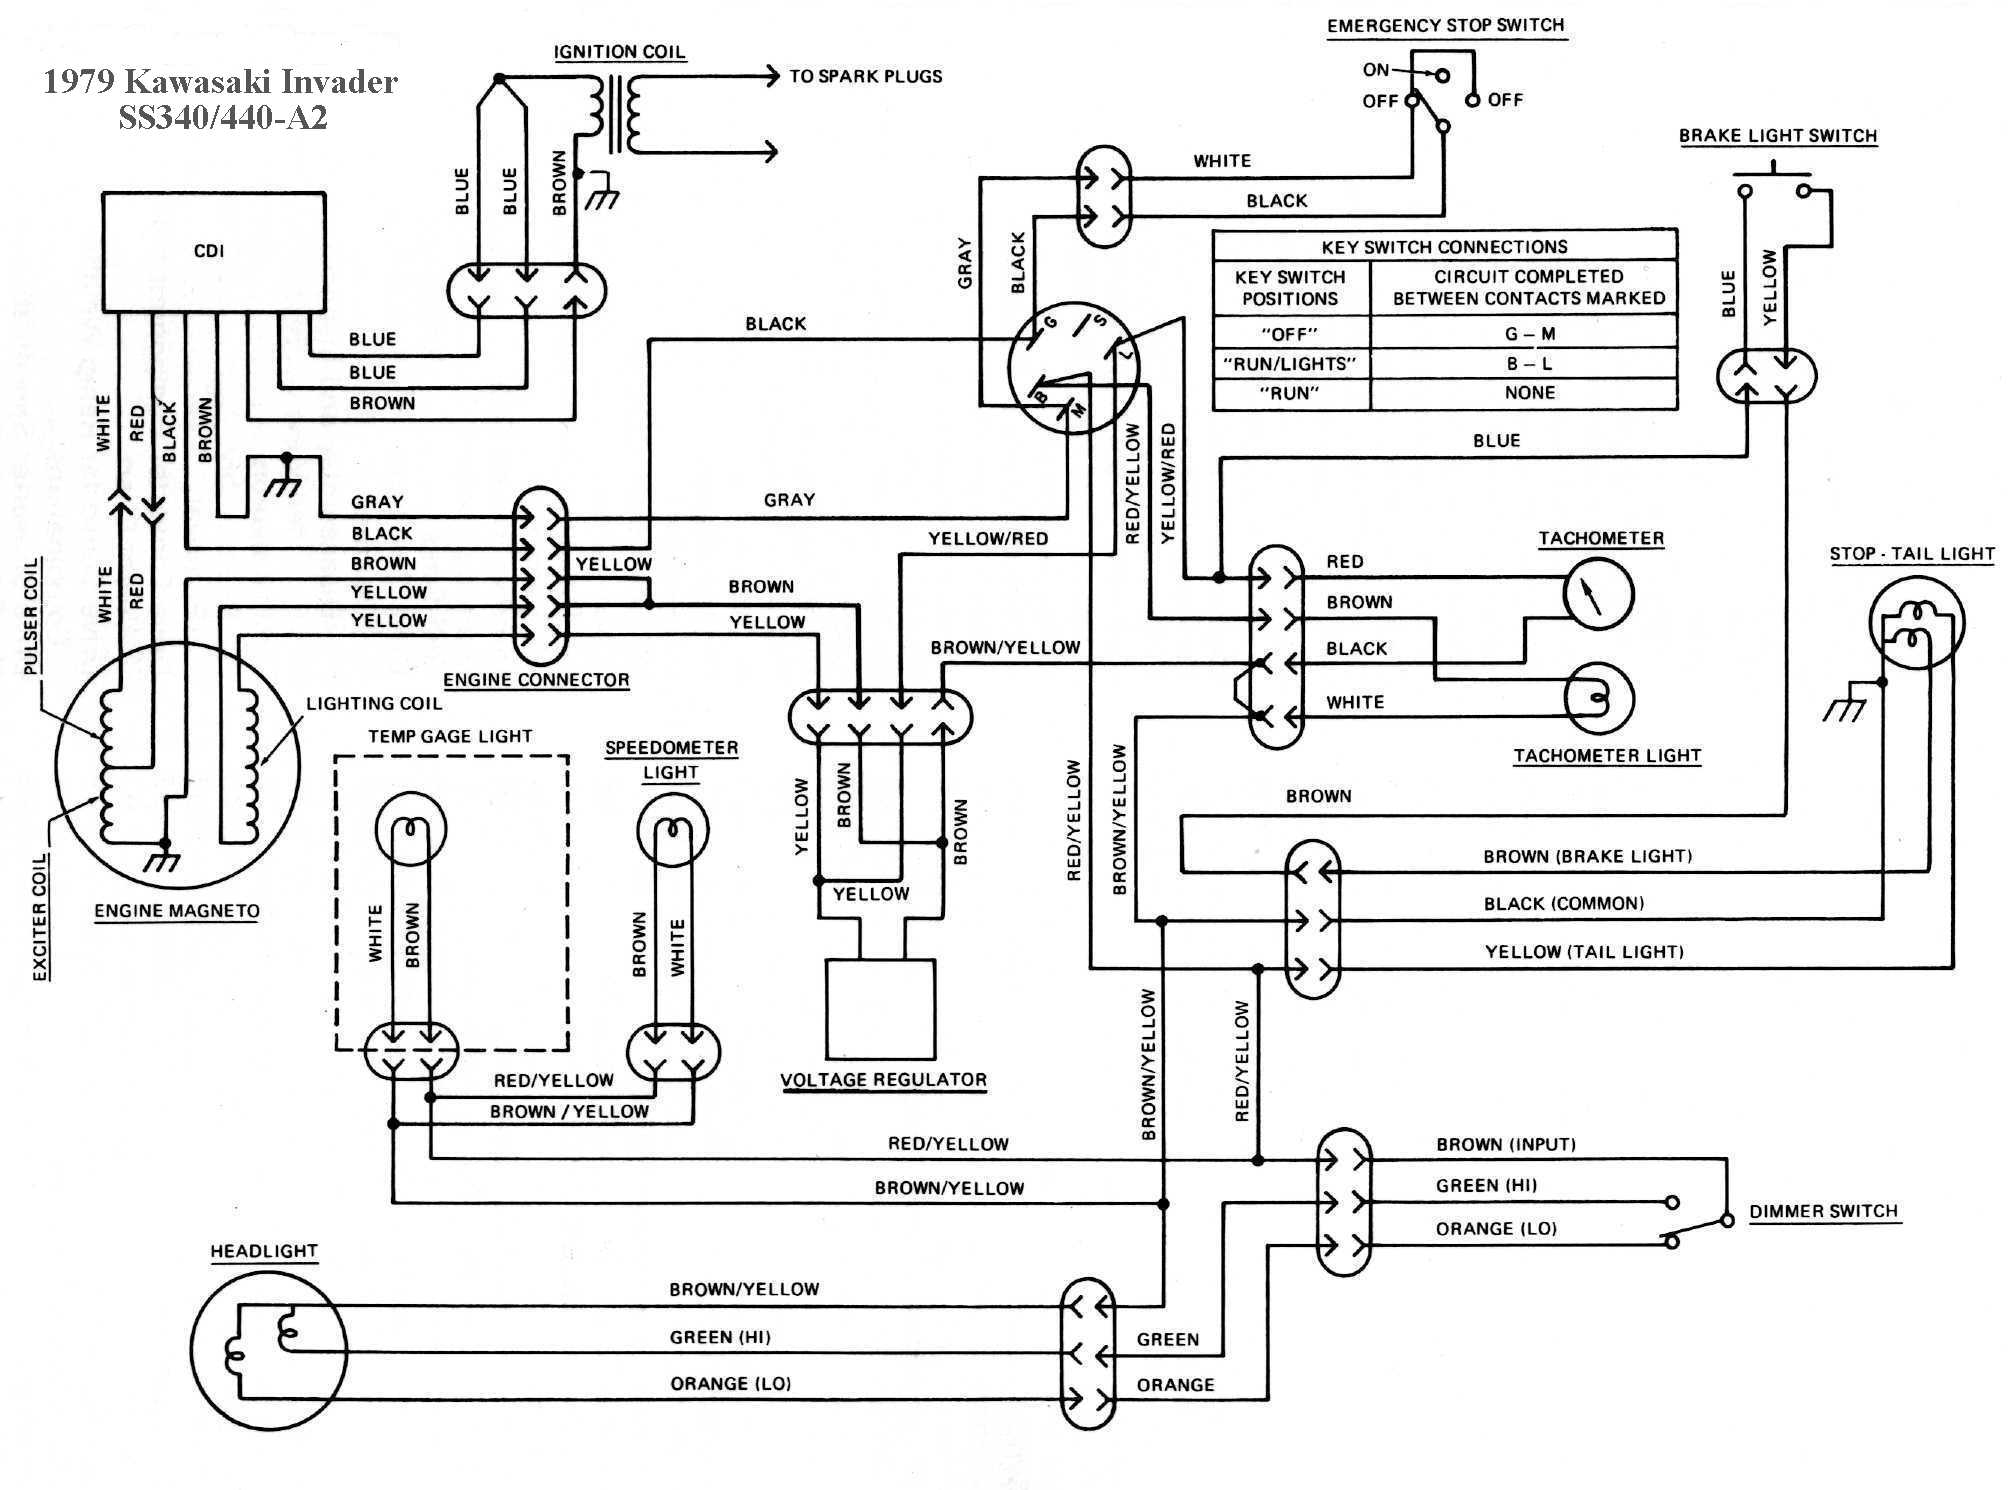 1998 Kawasaki Bayou 220 Wiring Diagram - Nice Place to Get ... on polaris axis, polaris stingray, polaris mrzr-4, polaris trailer, polaris renegade, polaris electric, polaris roadster, polaris edge x, polaris electrical schematics, polaris street legal, polaris diagram, polaris adventure, polaris battery, polaris transmission, polaris raptor, polaris cycles, polaris truck, polaris ranger schematics,